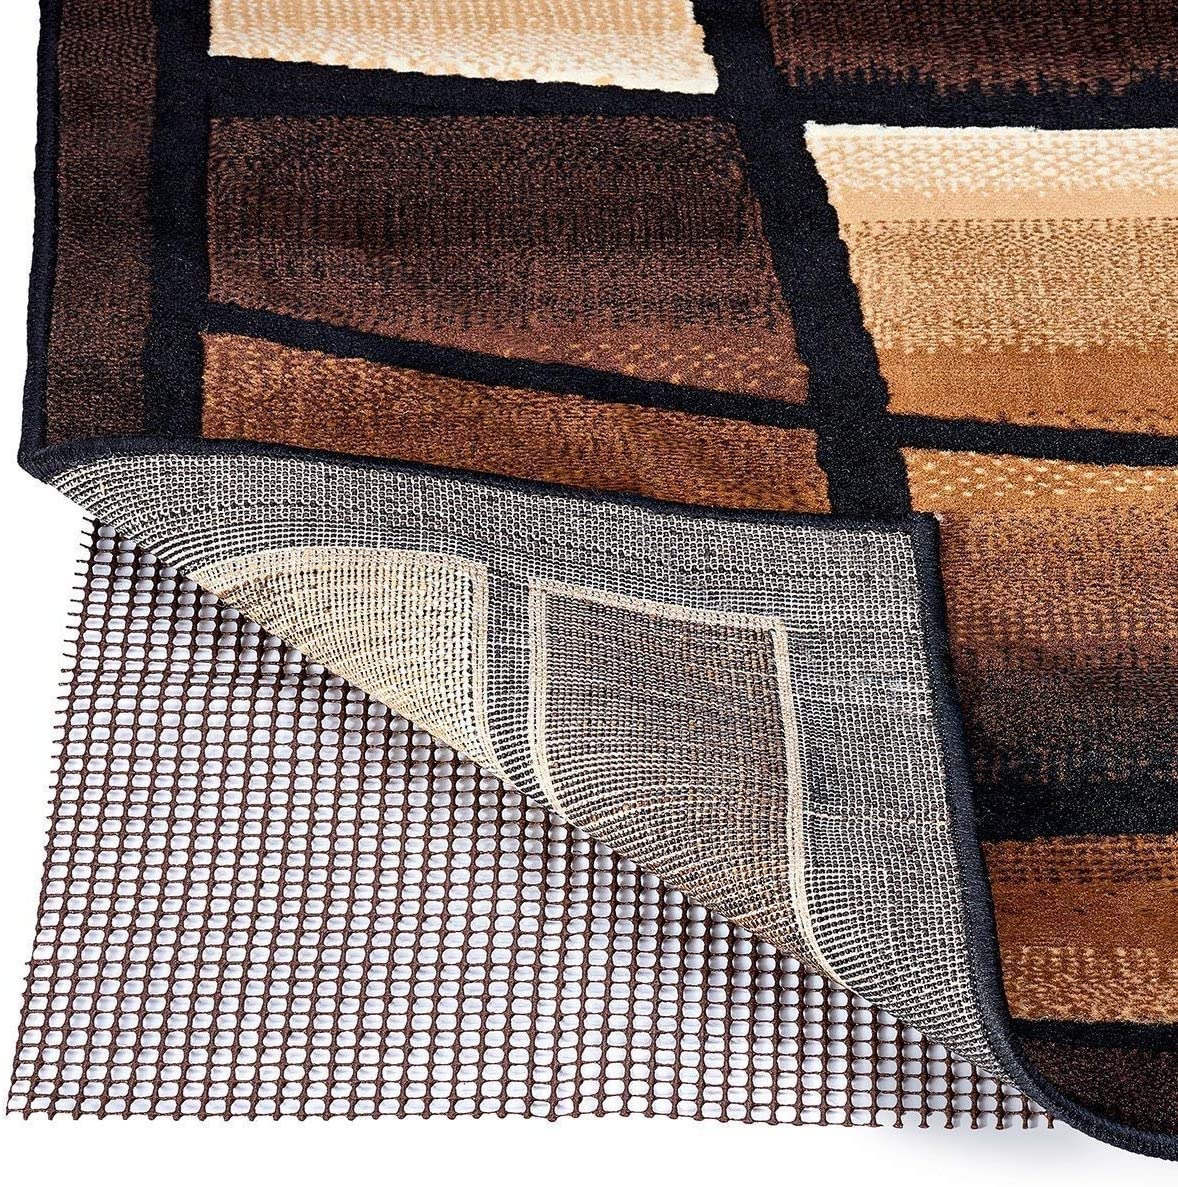 Modern At the price Outlet Non-Slip Area Rug Rubberized Indoor Some reservation - Pad Grip